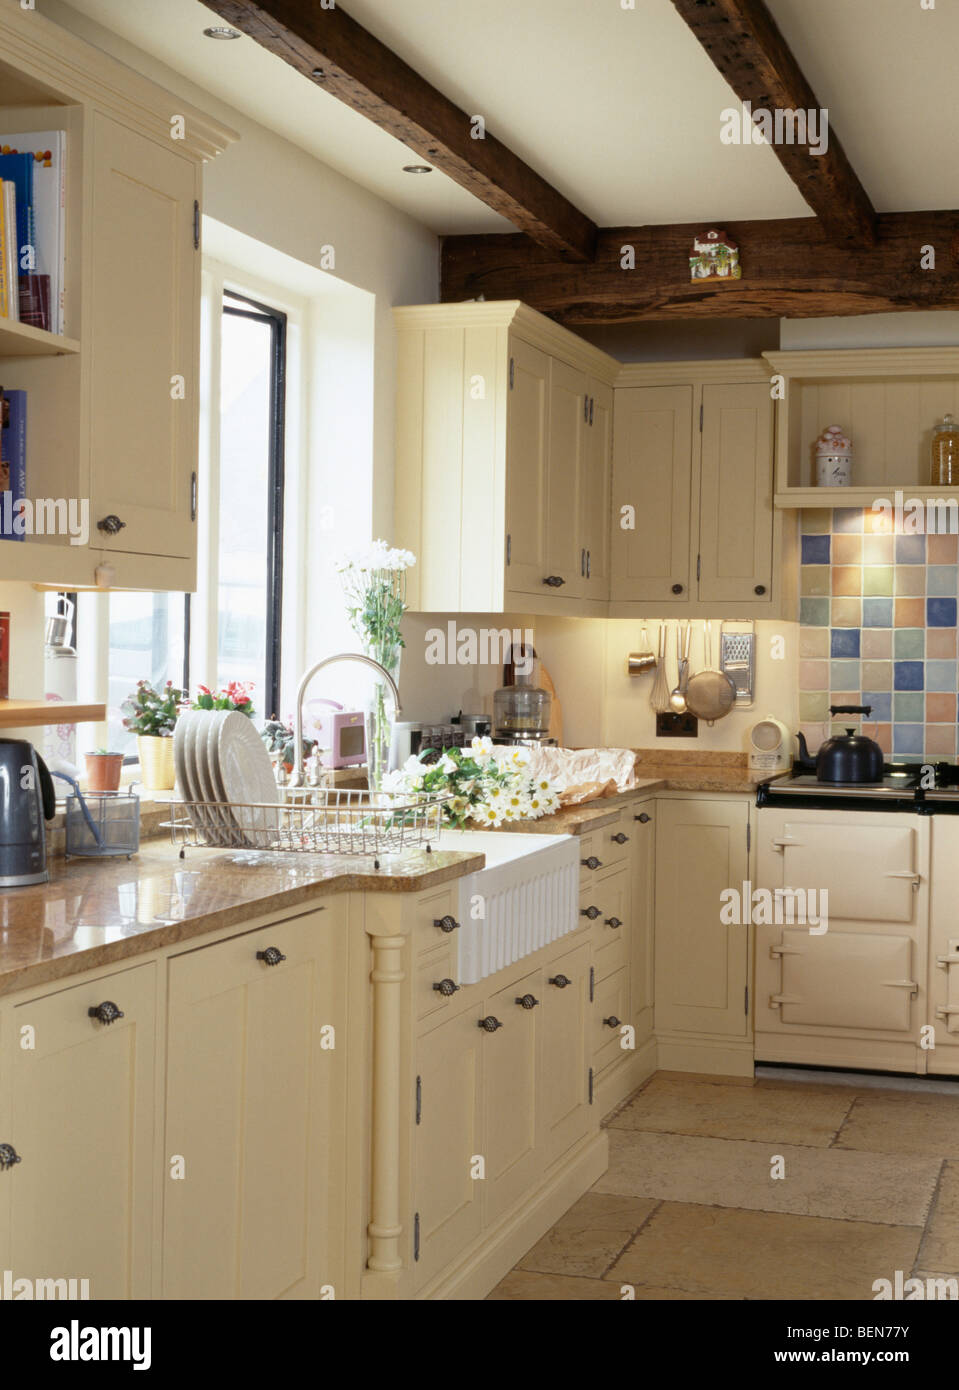 Belfast Sink Below Window In Country Cottage Kitchen With Cream Stock Photo Royalty Free Image